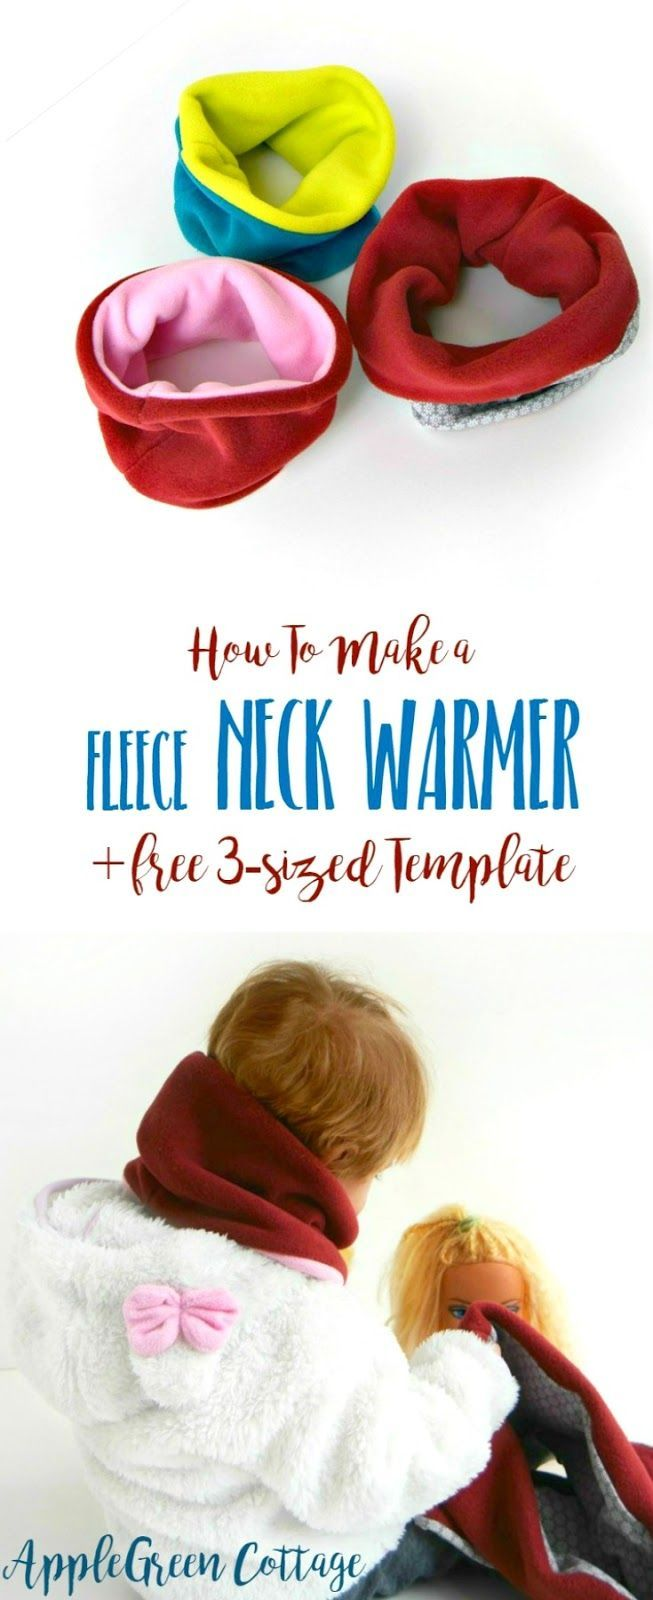 Fleece neck warmer tutorial with free 3-sized template. A quick and easy-sew.